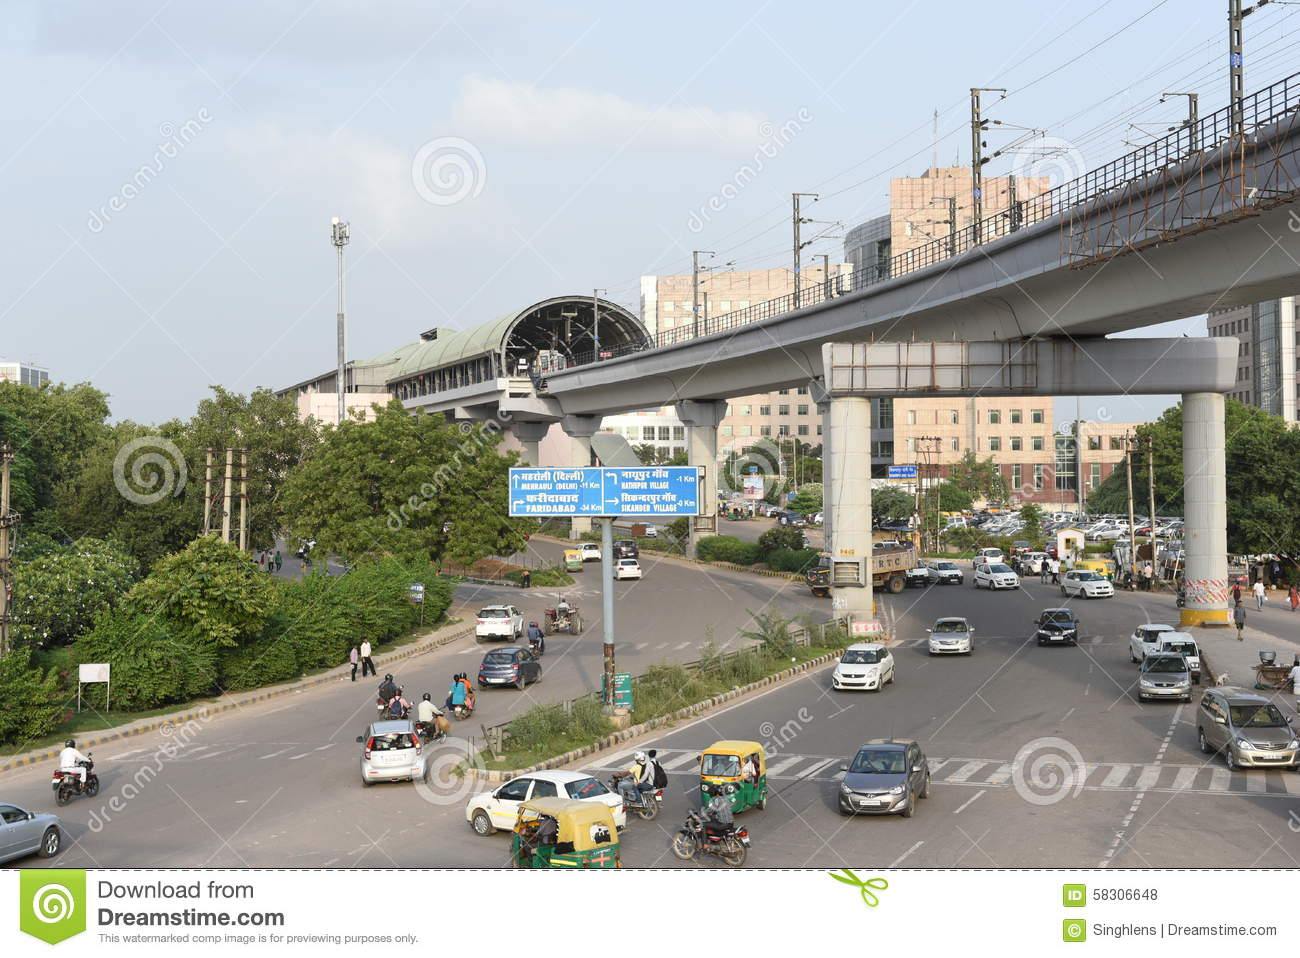 Gurgaon, Delhi, India: August 22nd 2015: Modern infrastructure offering better connectivity to public